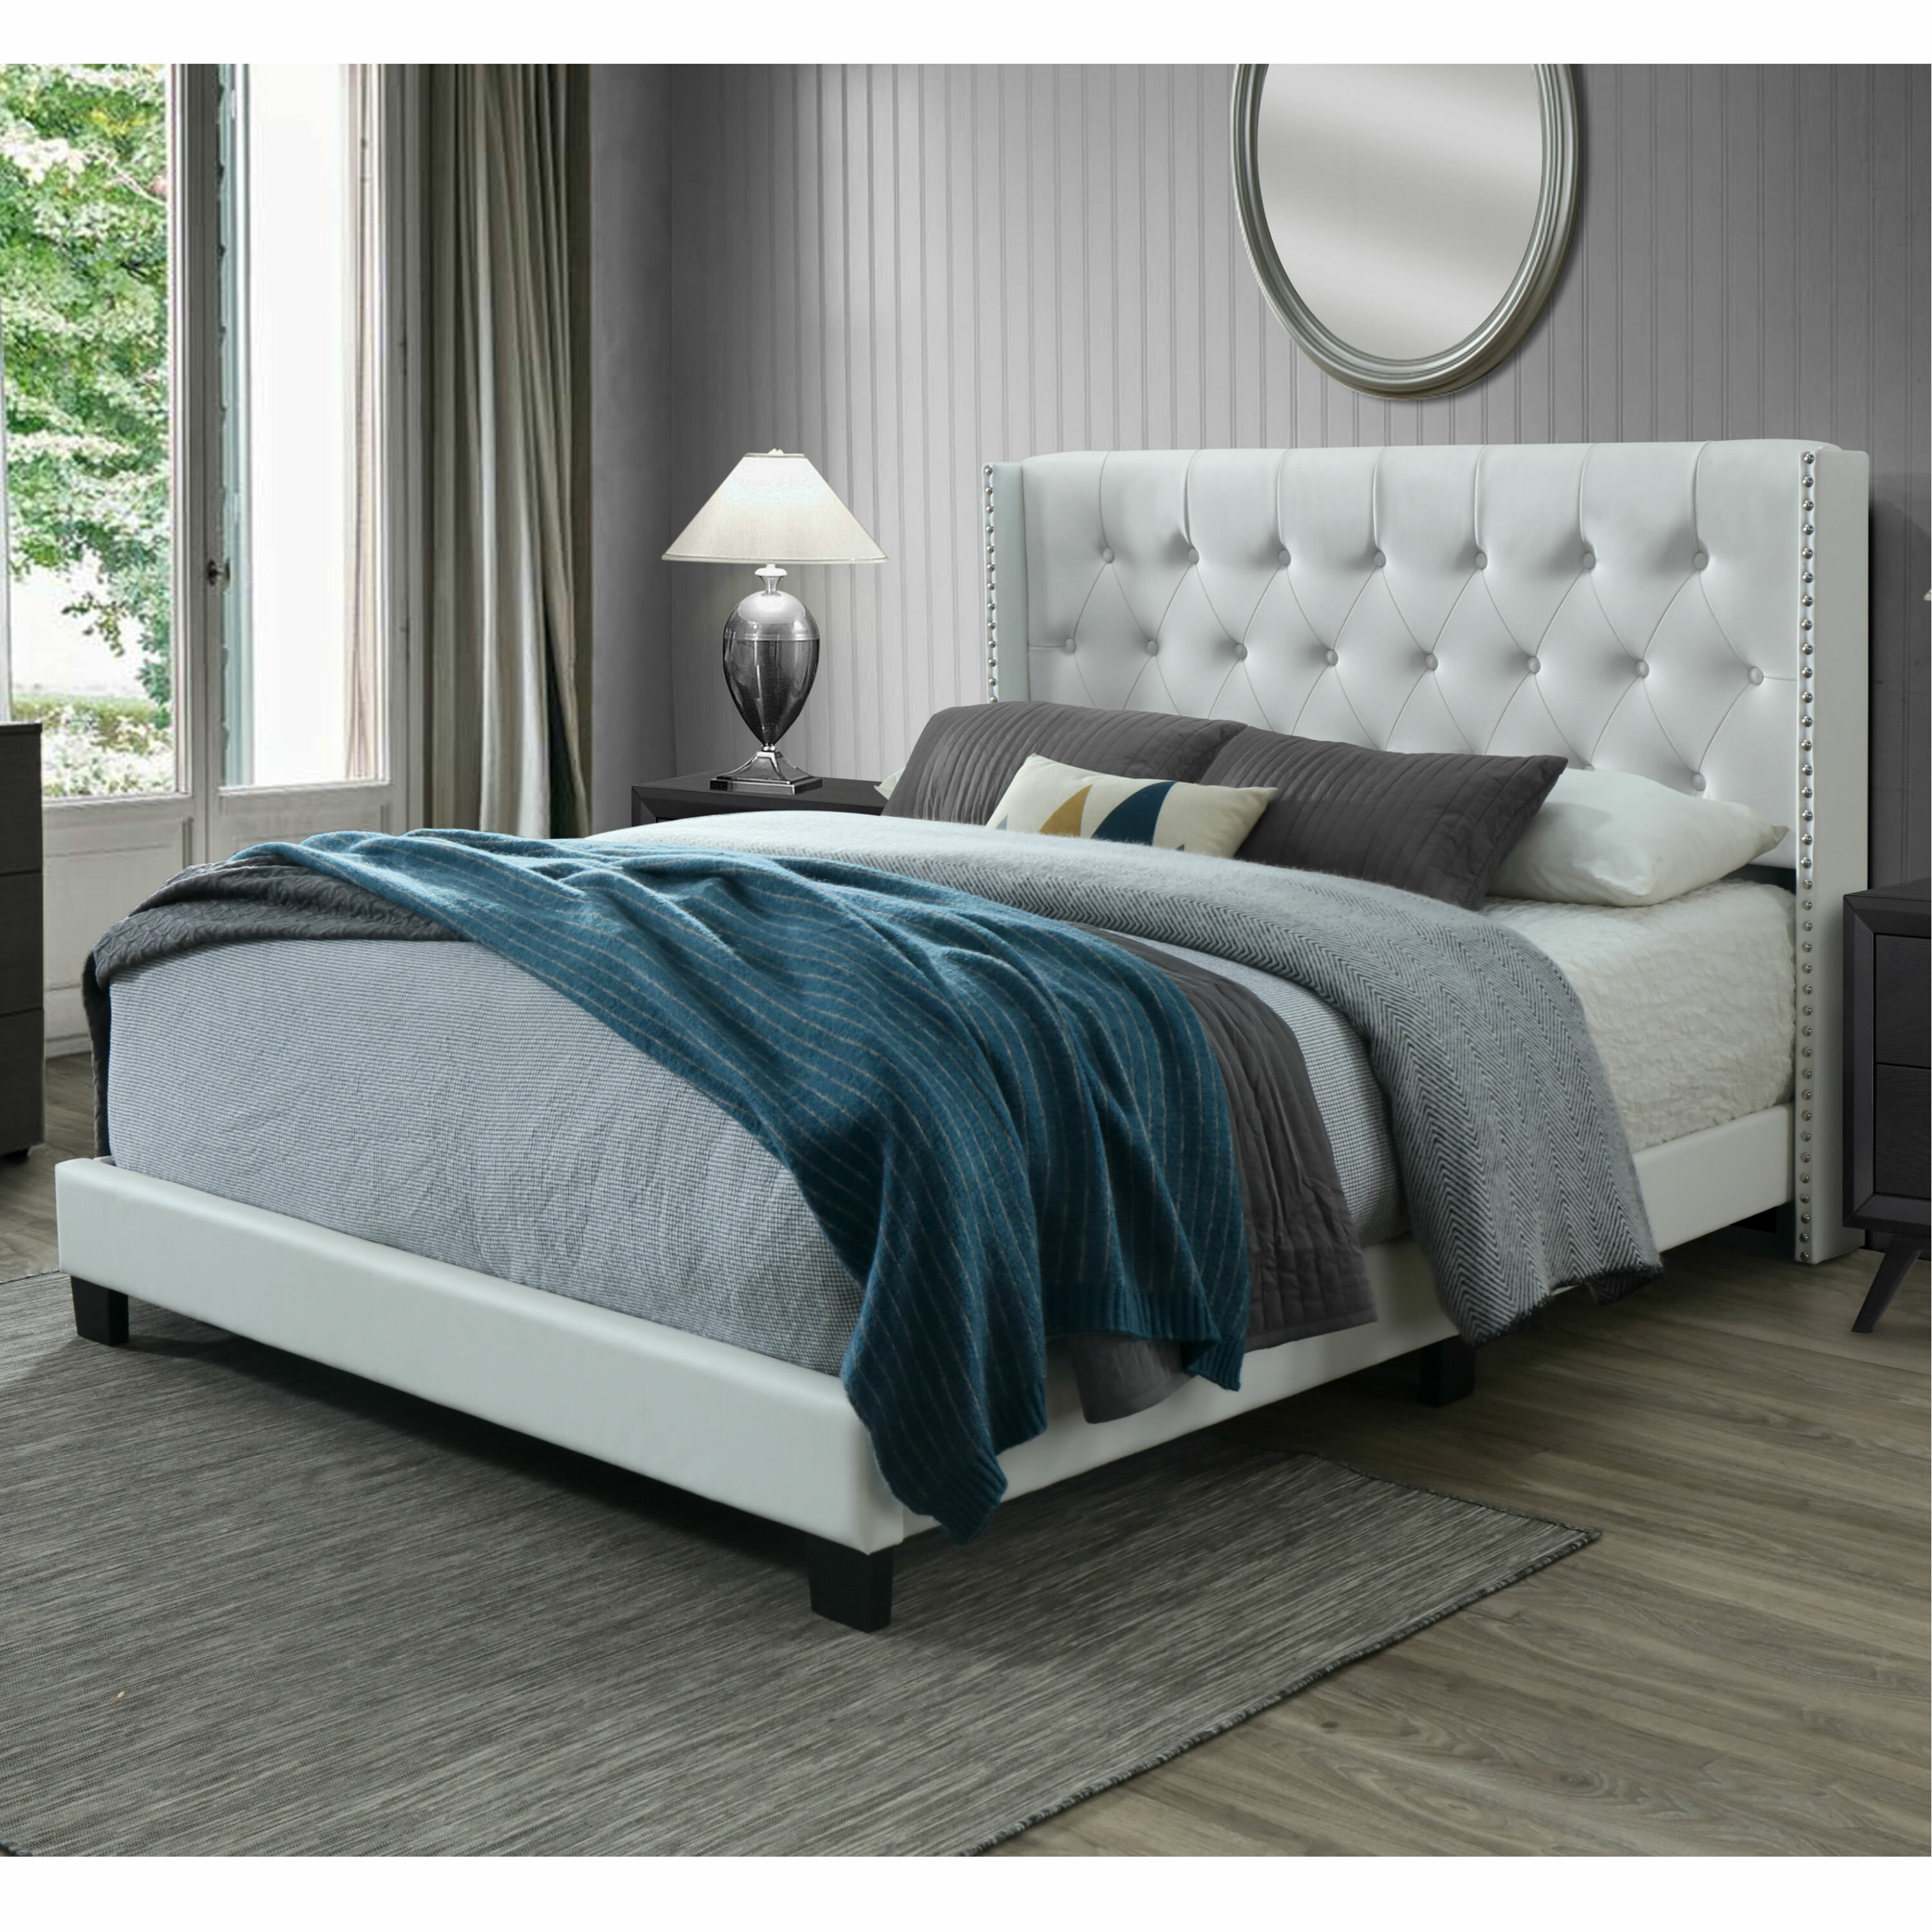 Willa Arlo Interiors Nadine Tuftedsolid Wood And Upholstered Low Profile Standard Bed Reviews Wayfair